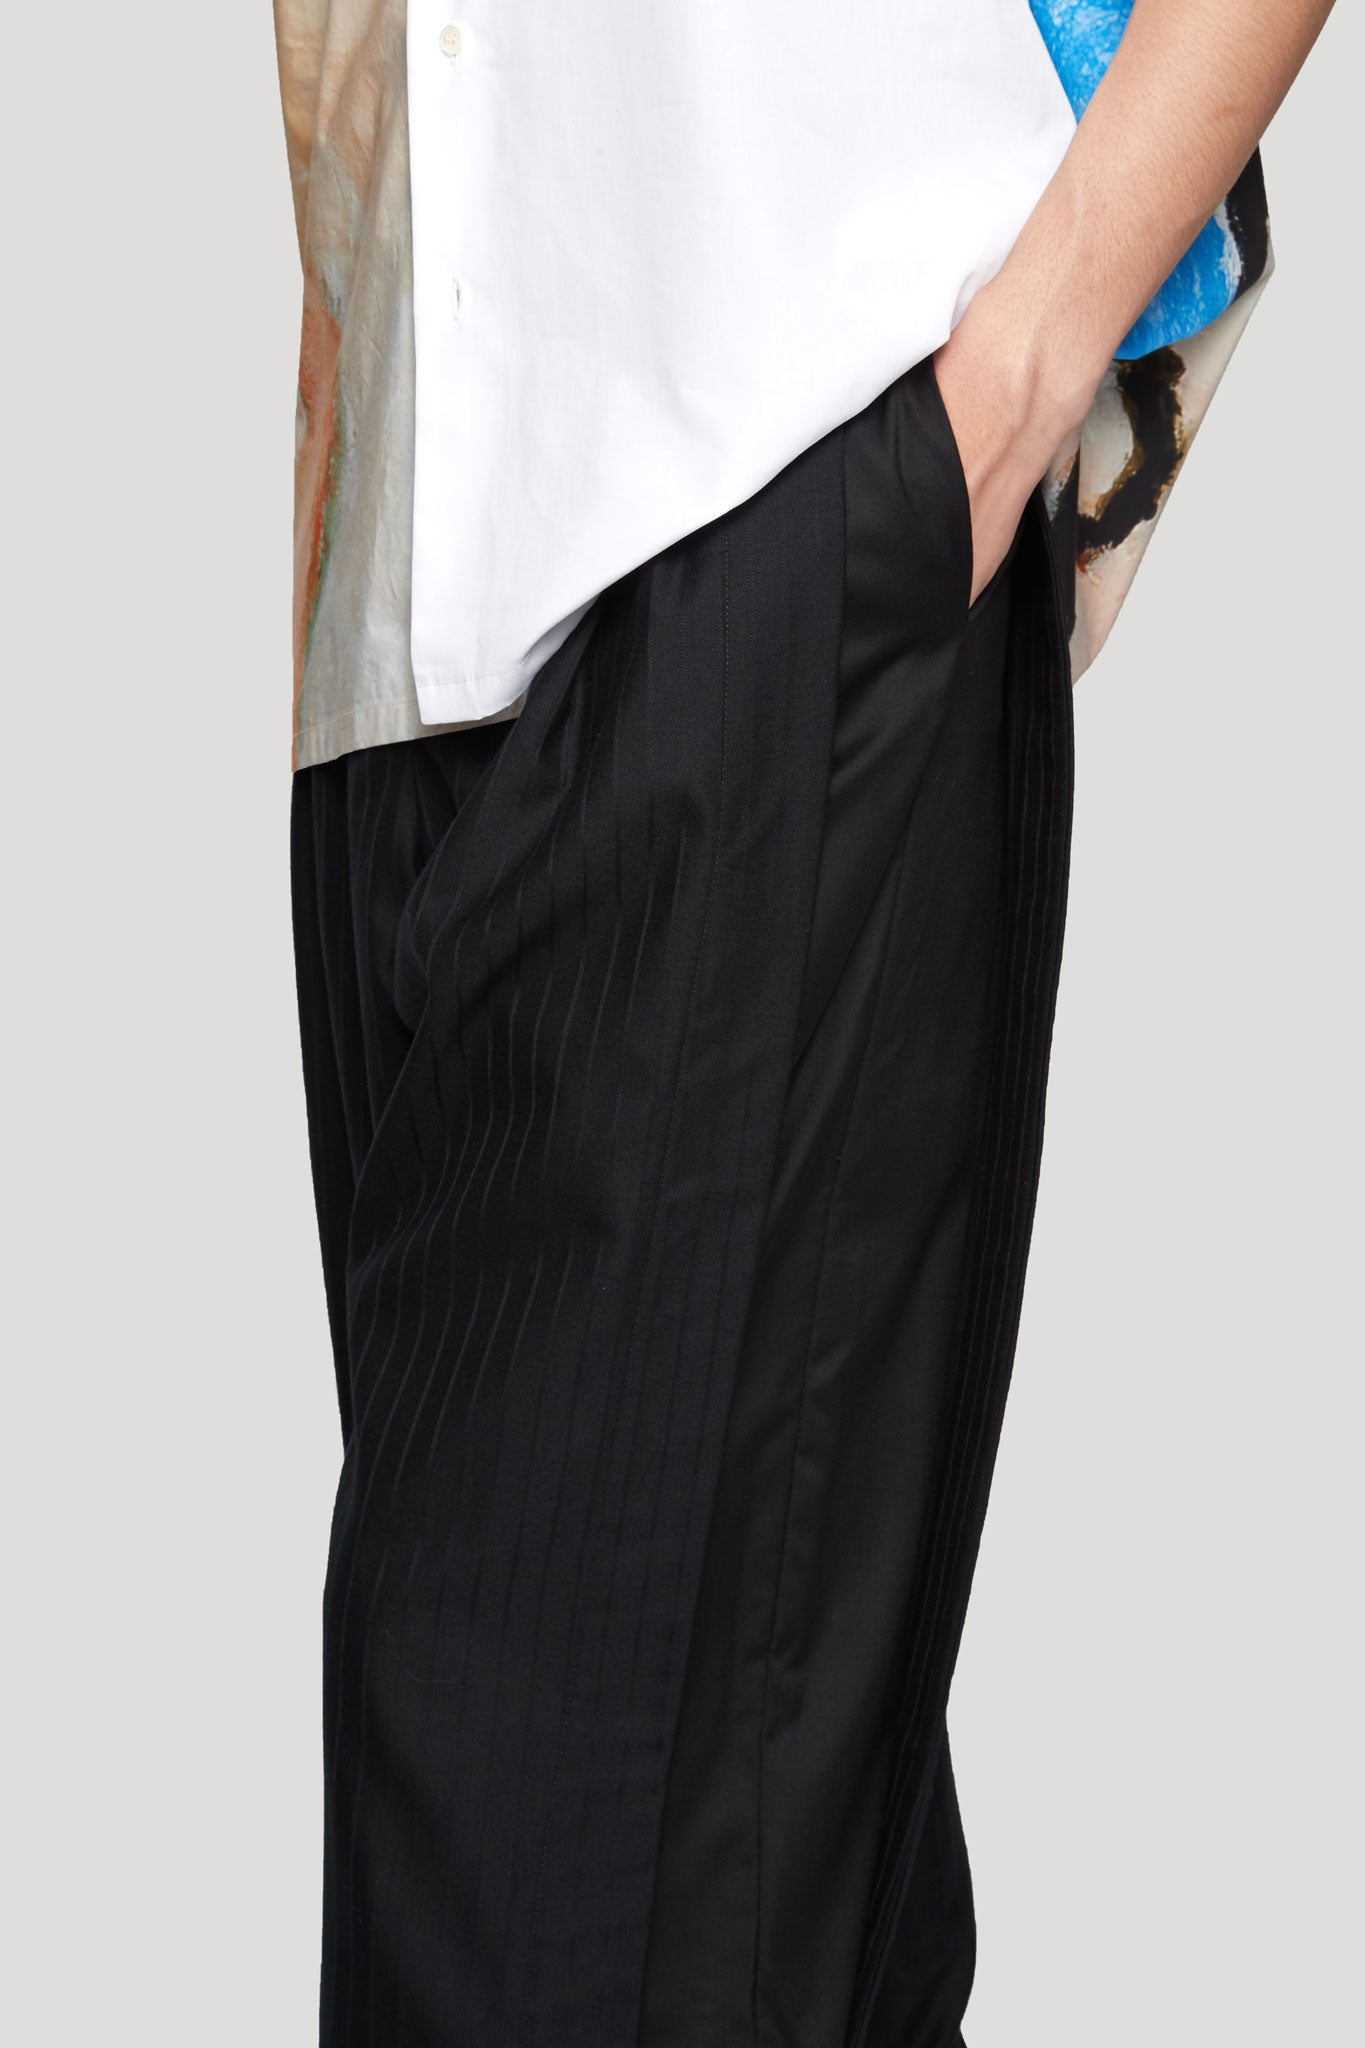 Geoff Double Layer Warm Up Open Shorts Dry Onyx Muted Stripe